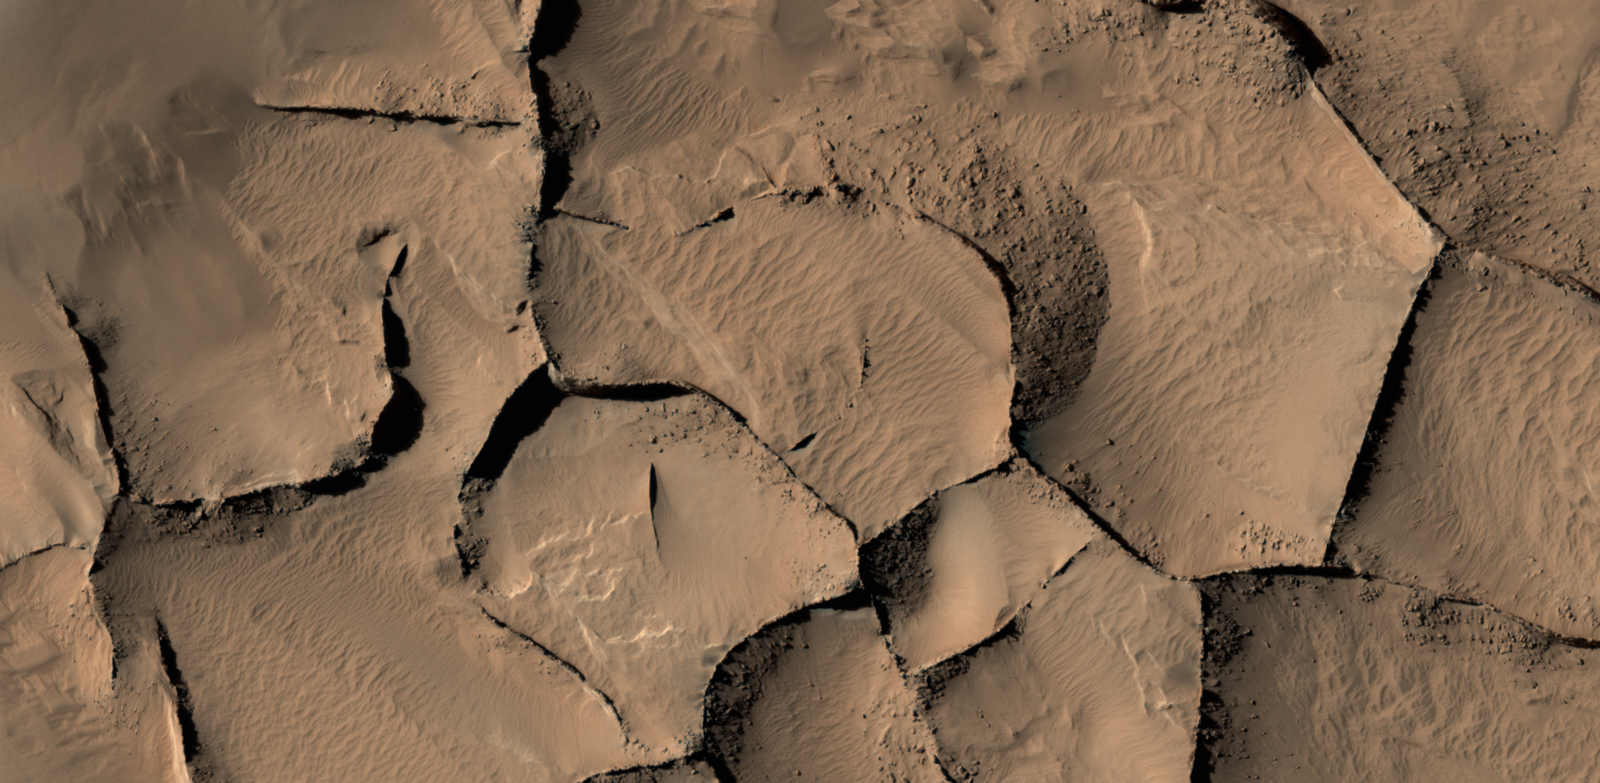 This view from the HiRISE camera on NASA's Mars Reconnaissance Orbiter shows part of an area on Mars where narrow rock ridges, some as tall as a 16-story building, intersect at angles forming corners of polygons.